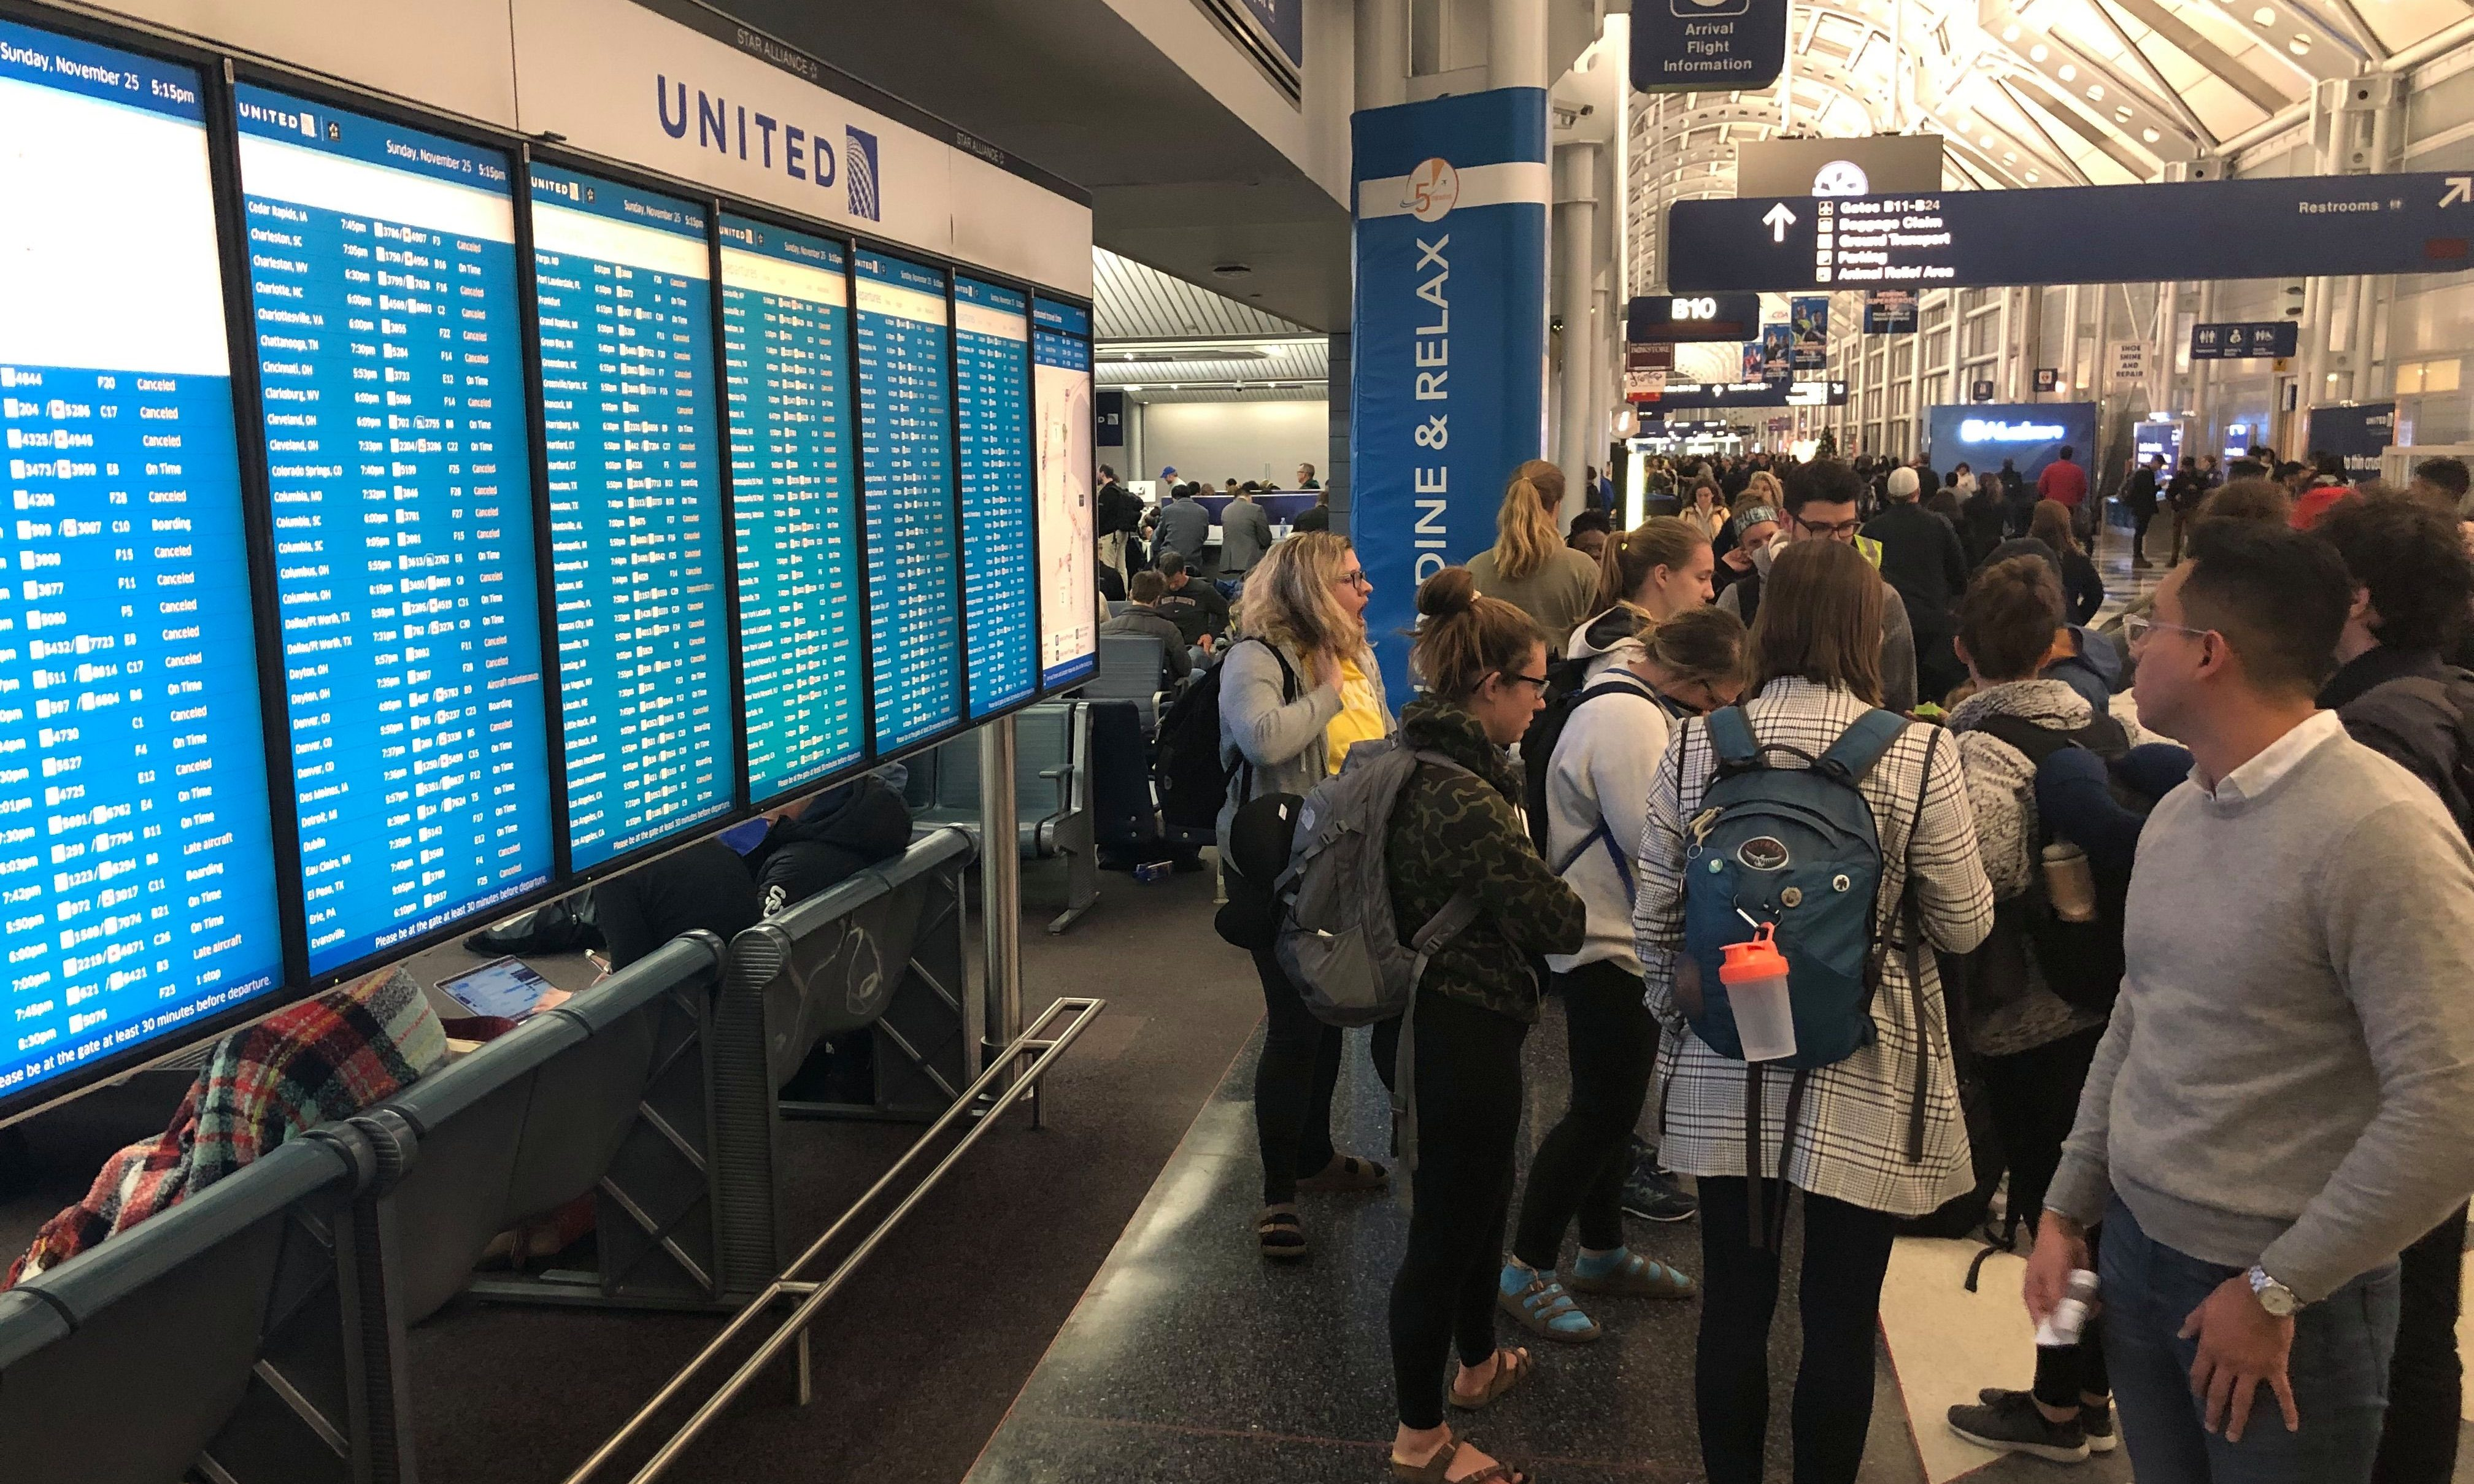 Delayed travelers at Chicago O'Hare Airport amid the storm